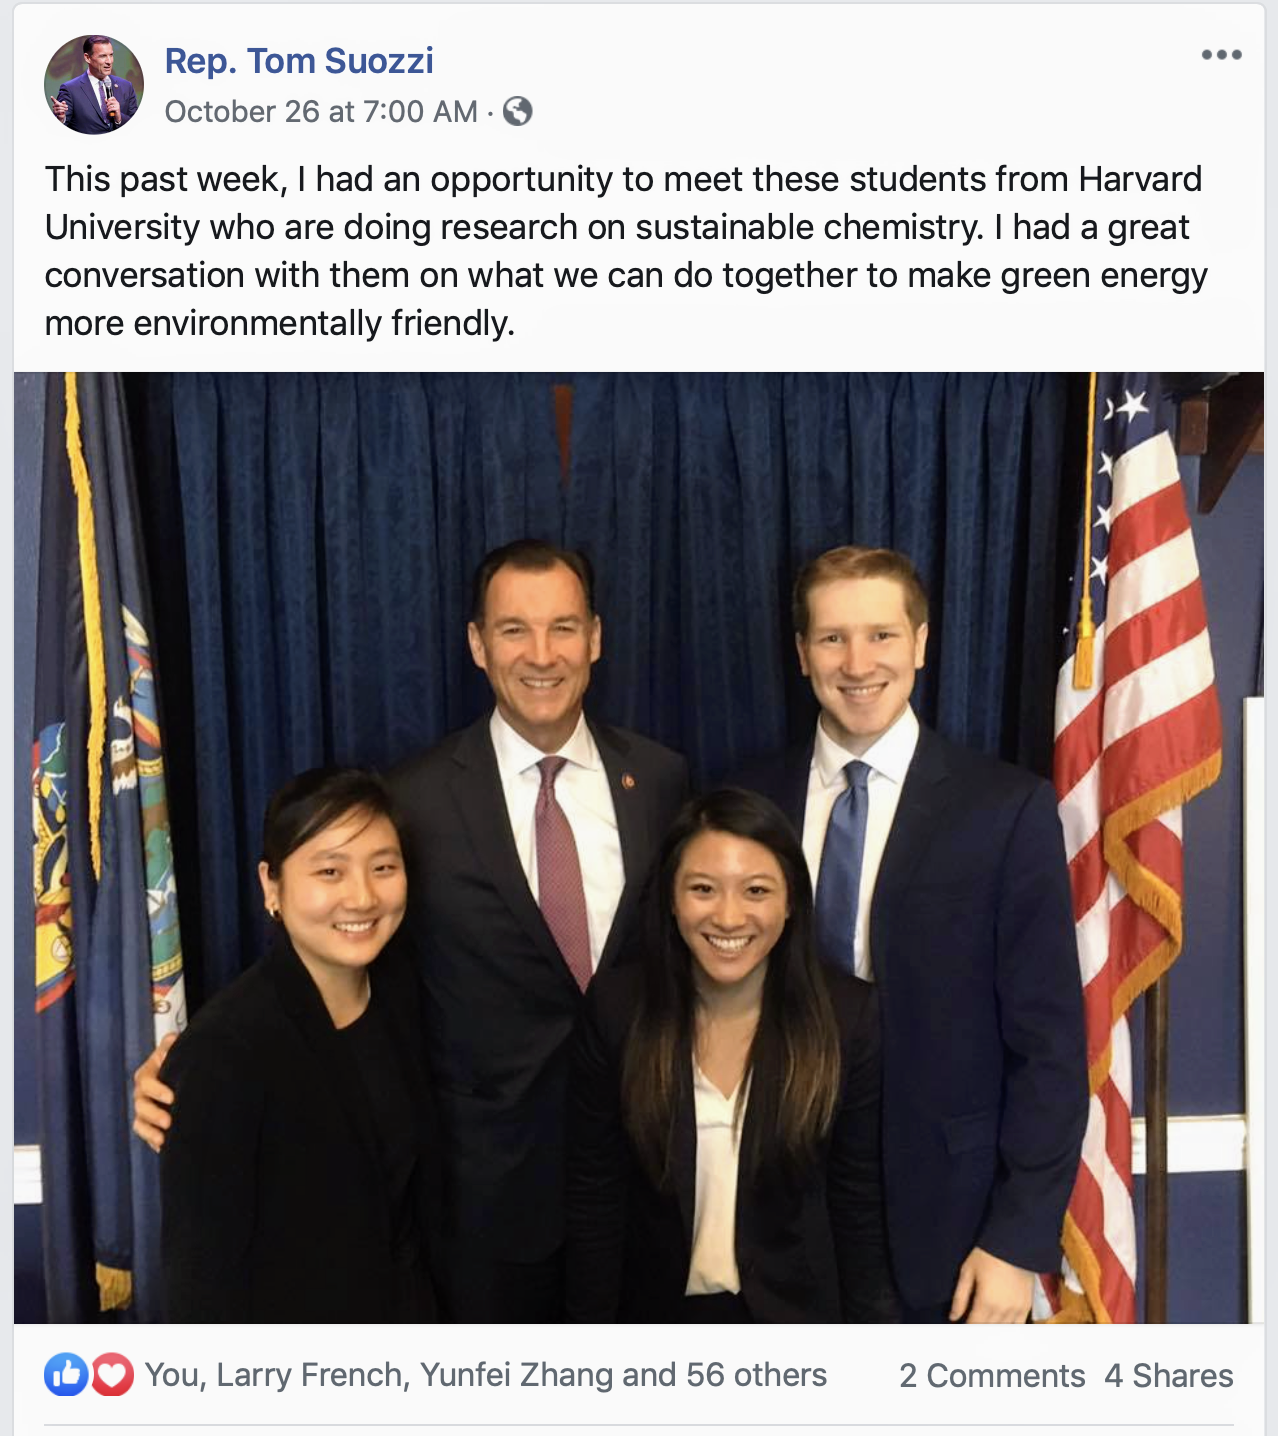 Rep. Tom Suozzi posts on Facebook his meeting with Harvard University students about sustainable chemistry. In the photo, he poses for a photo with three students.